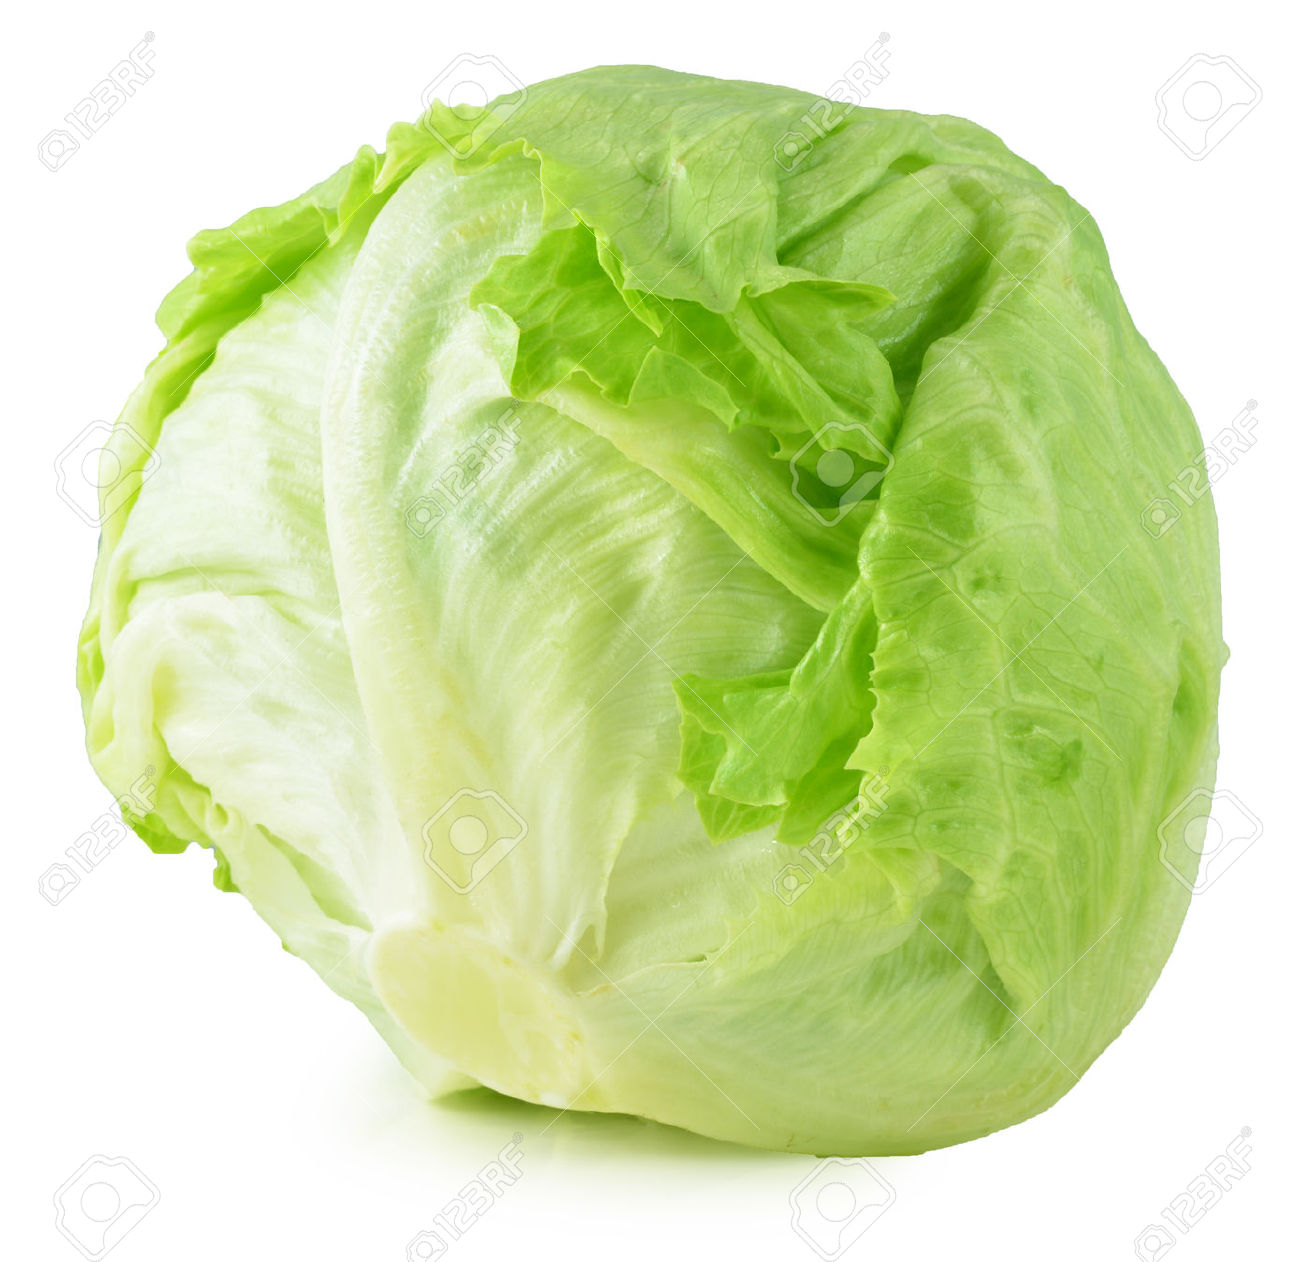 Iceberg lettuce clipart 20 free Cliparts | Download images ...